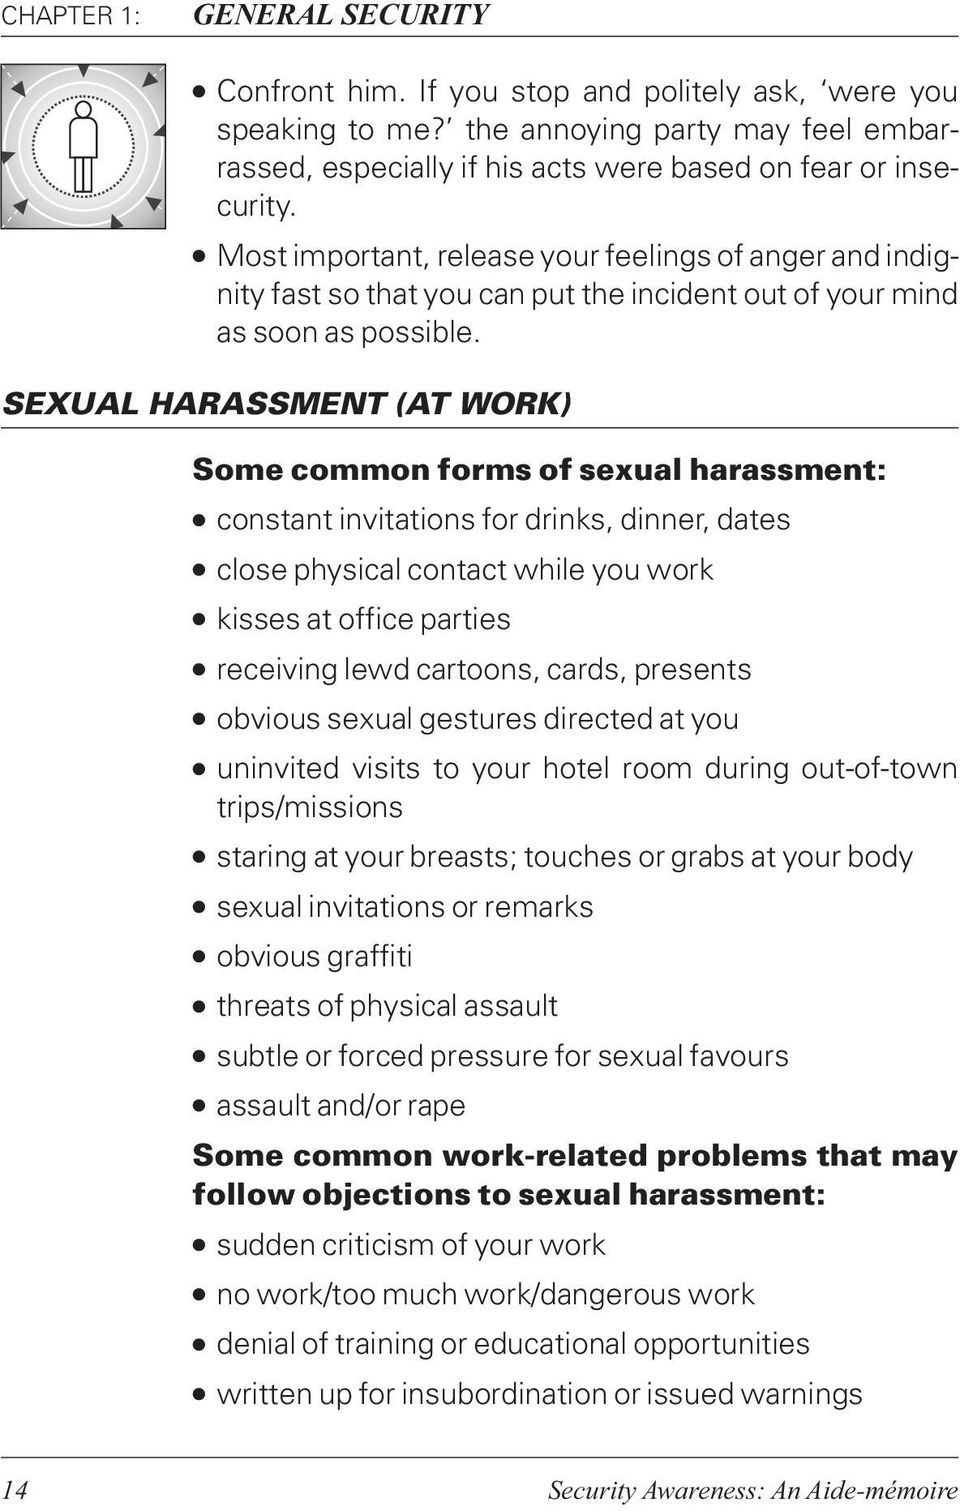 SEXUAL HARASSMENT (AT WORK) Some common forms of sexual harassment: constant invitations for drinks, dinner, dates close physical contact while you work kisses at office parties receiving lewd